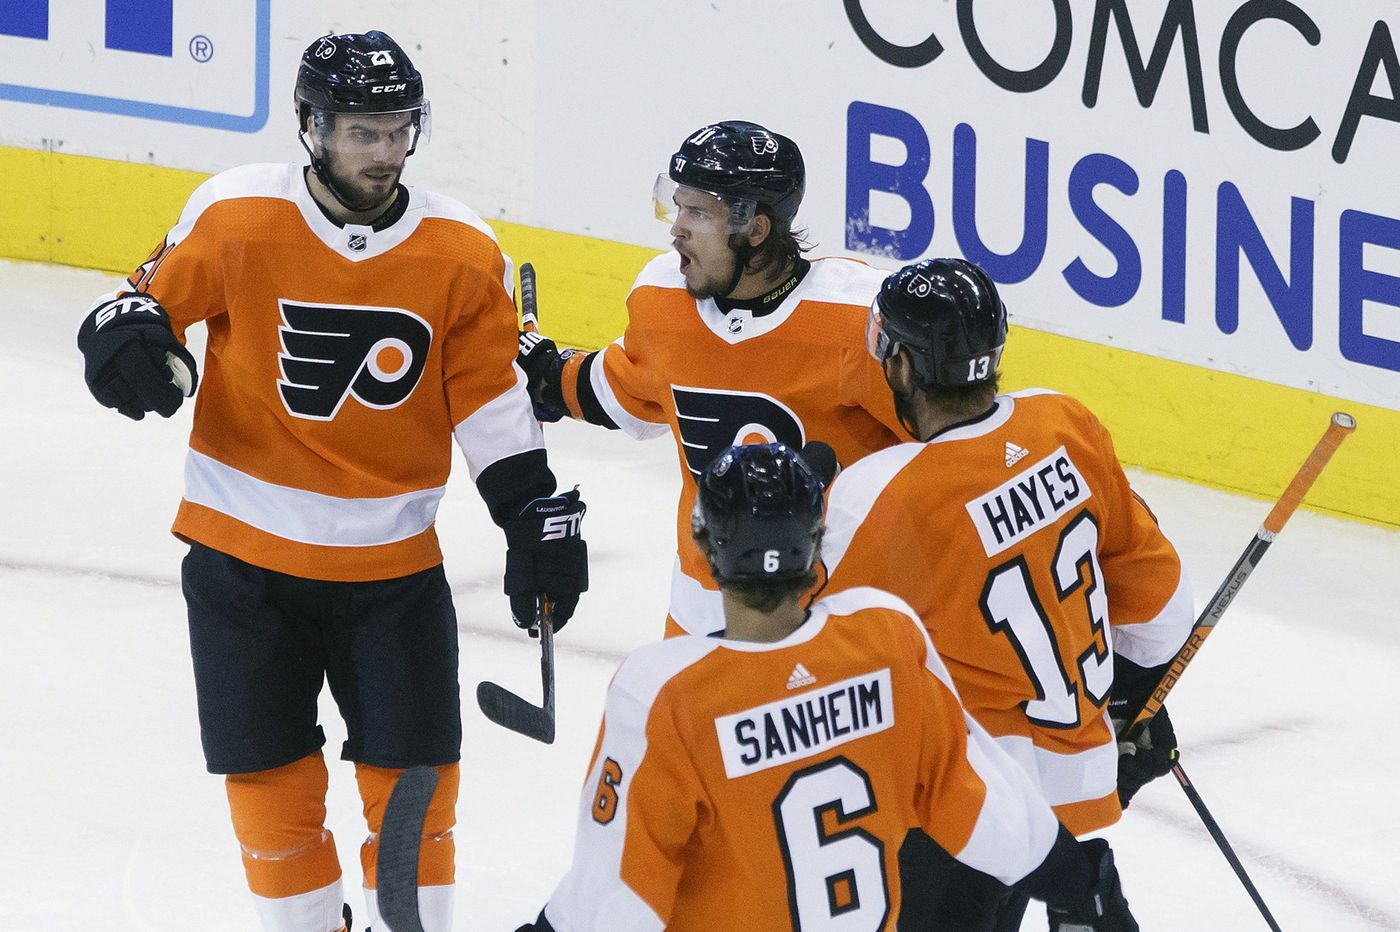 Two key players will be out as 'matured' Flyers face Tampa Bay with East's No. 1 seeding on the line